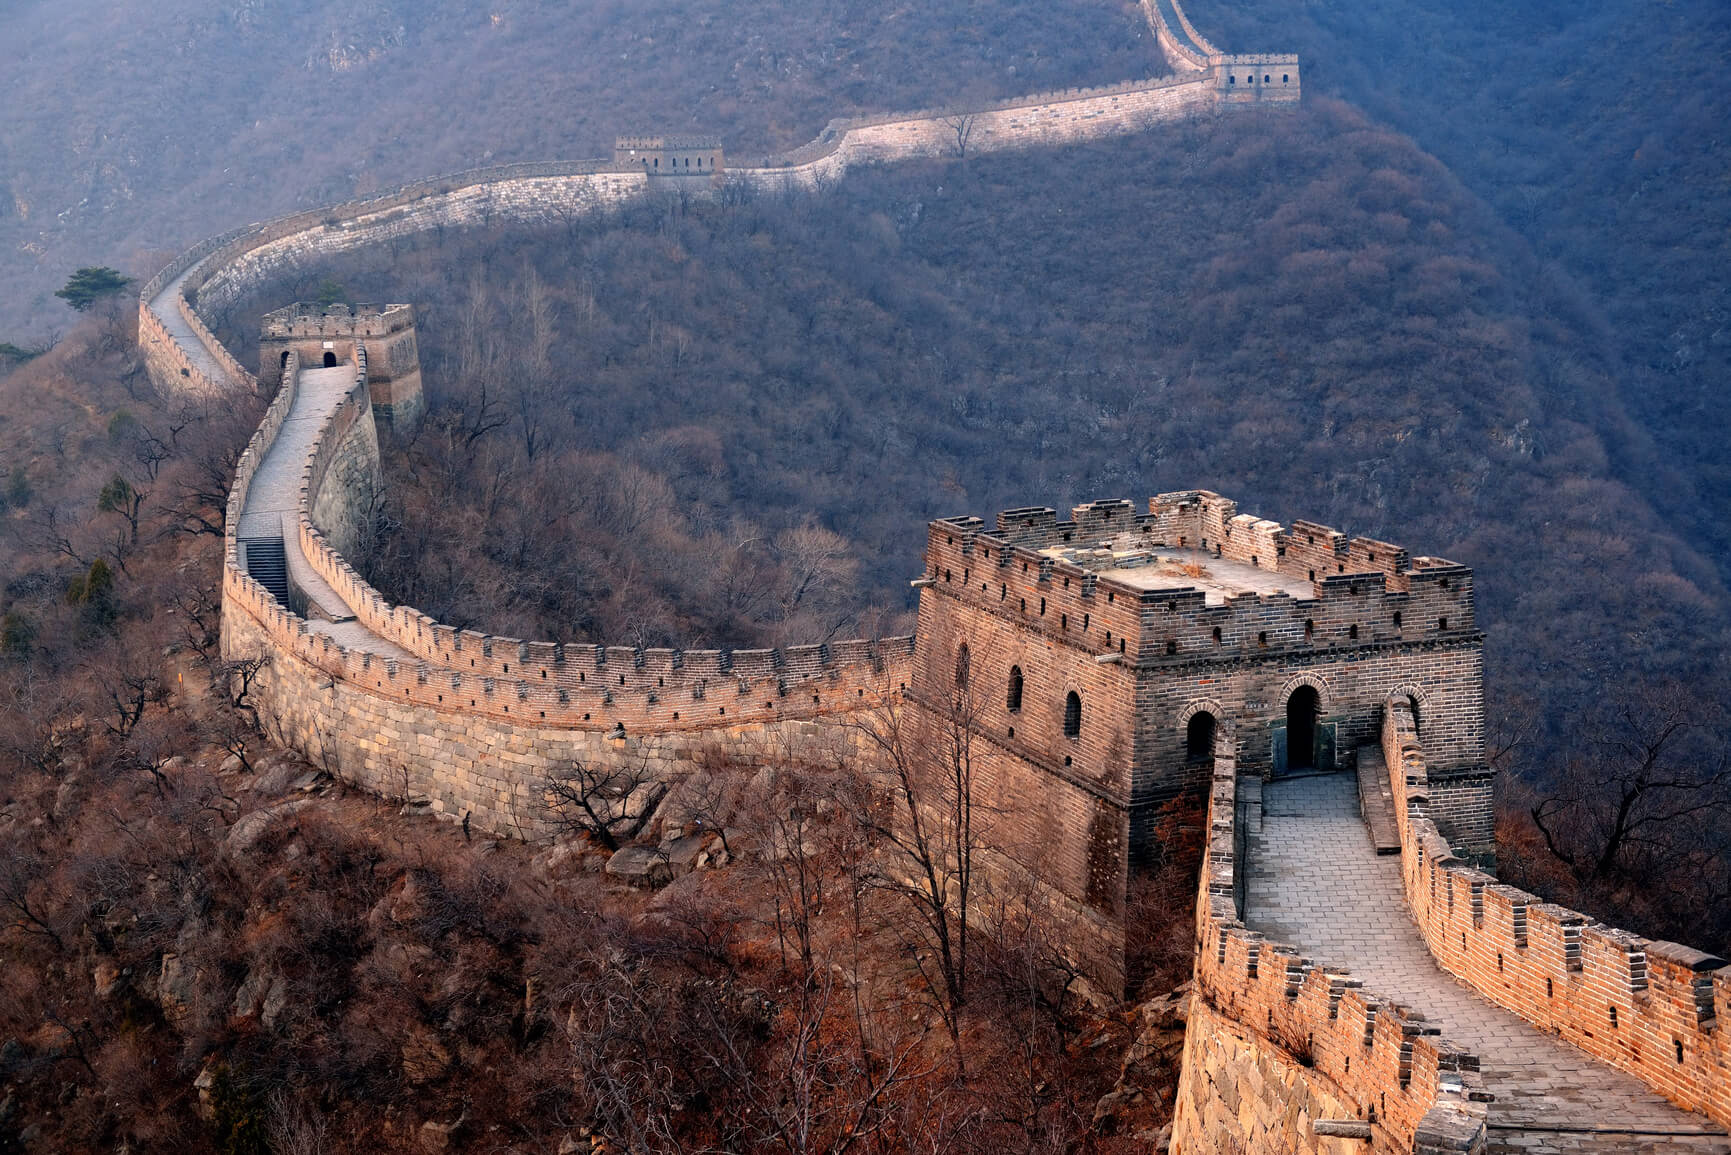 Non-stop from Chicago to Beijing, China for only $420 roundtrip